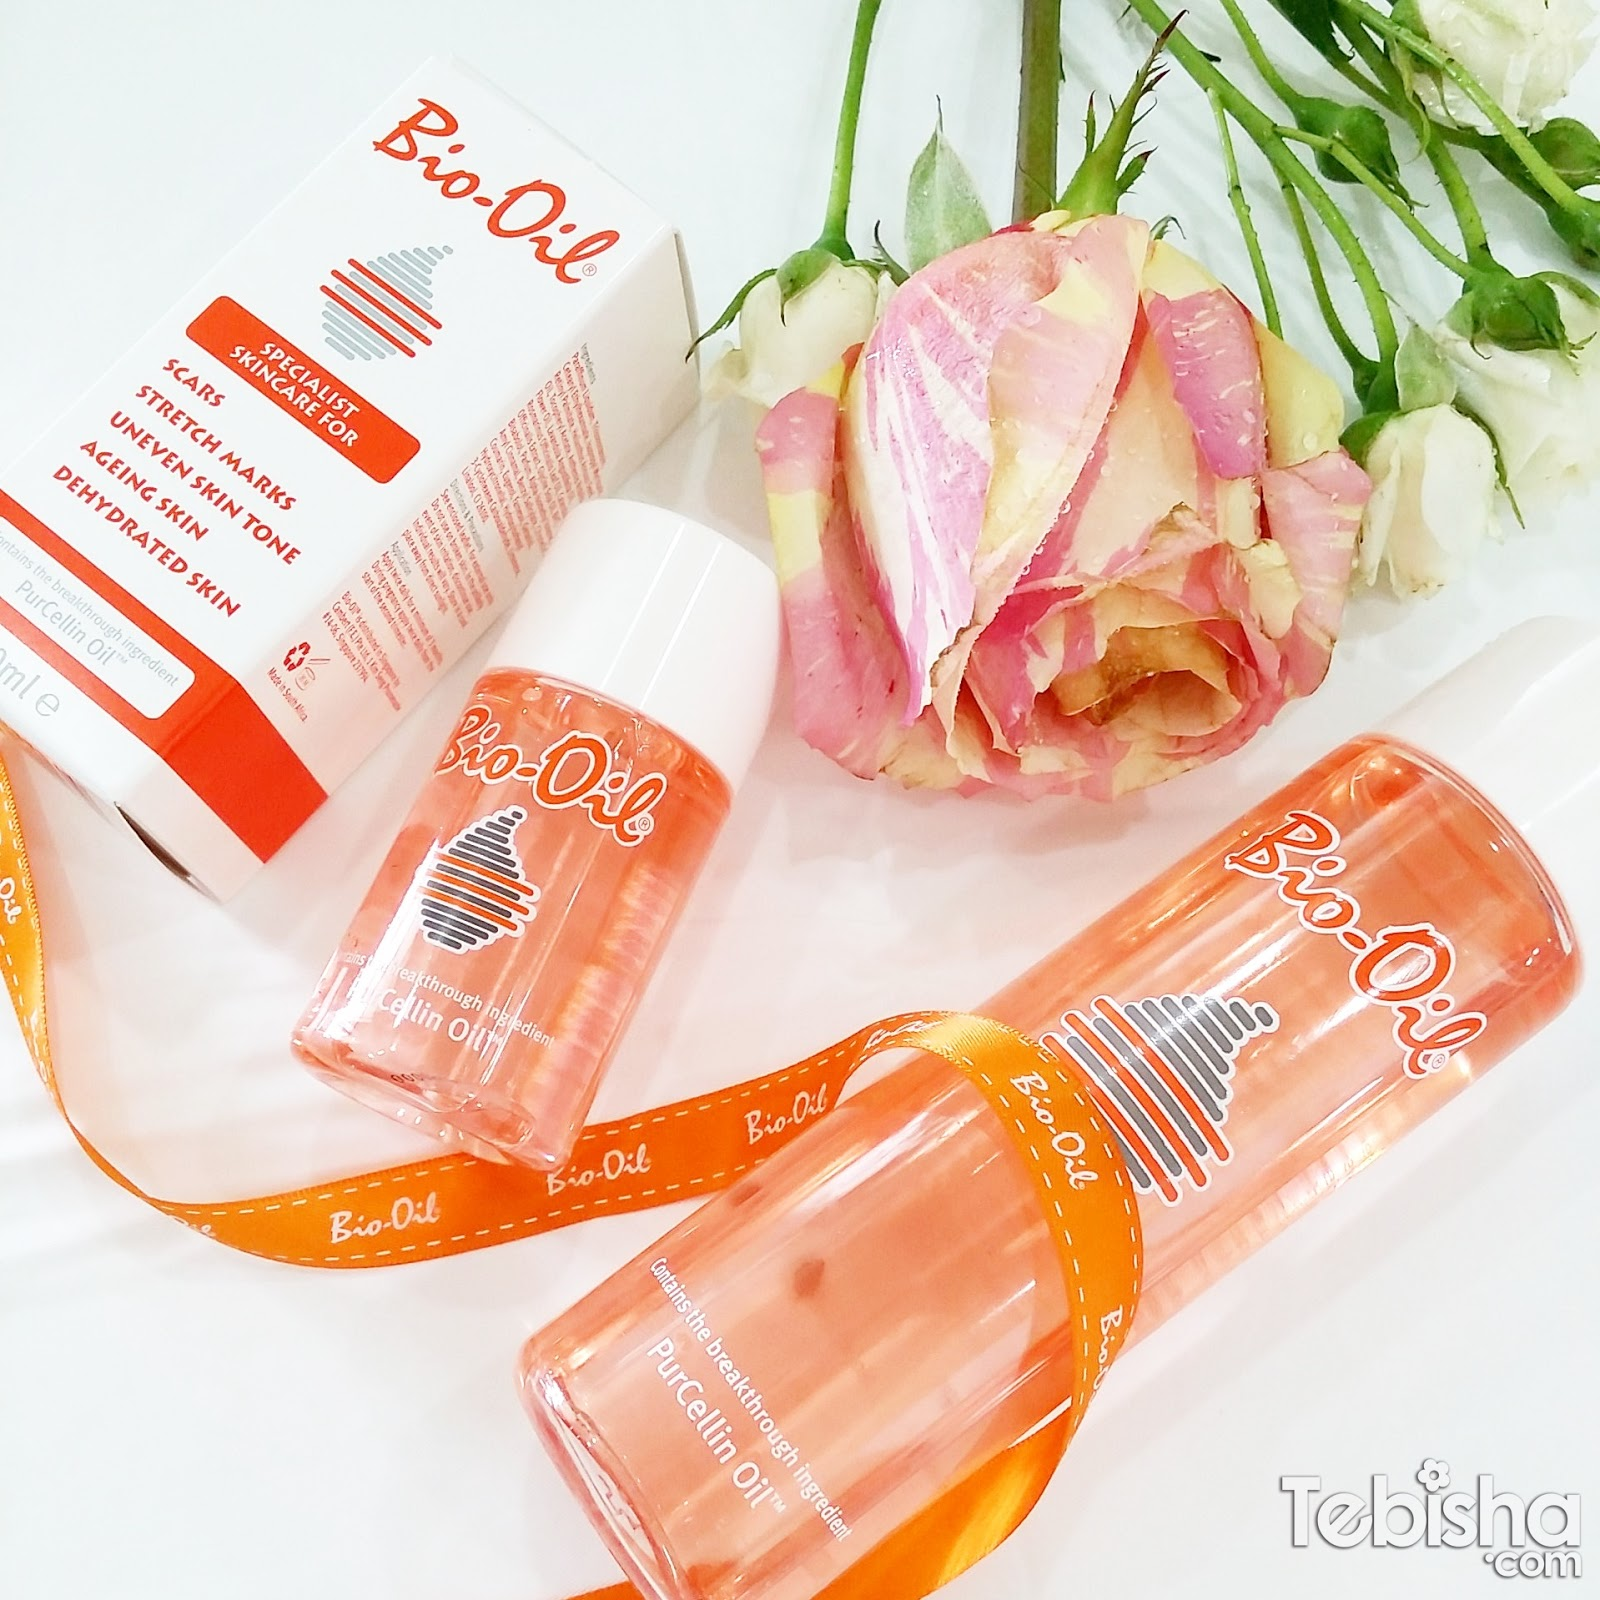 Review How Bio Oil Helps On My Scars Skincare